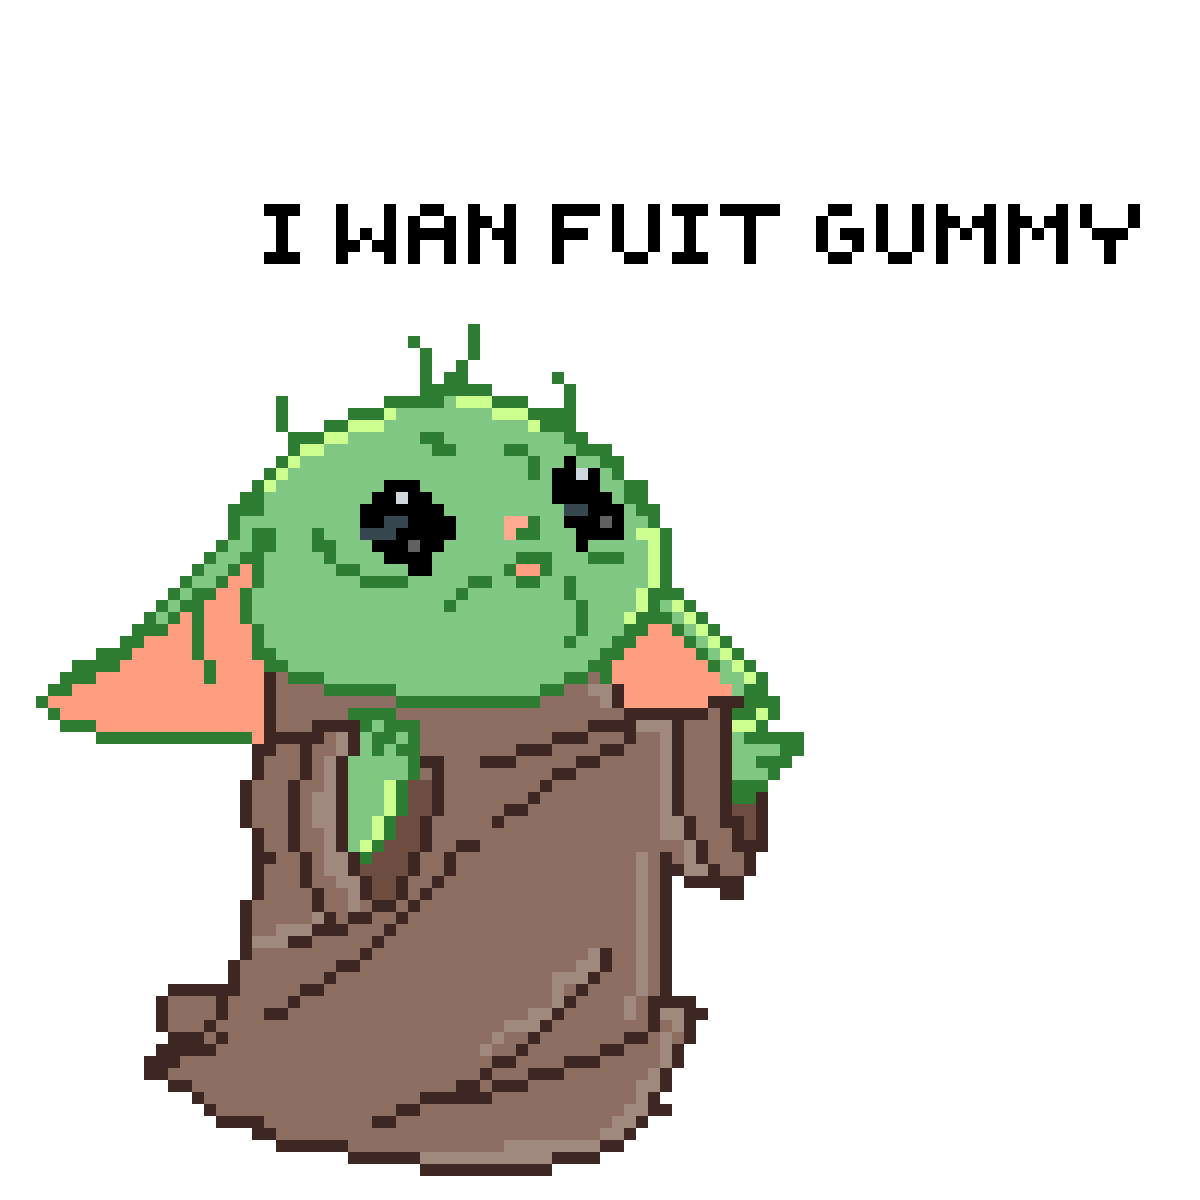 Fuit Gummy Yoda – Baby yoda uses the force to get a fruit gummy.